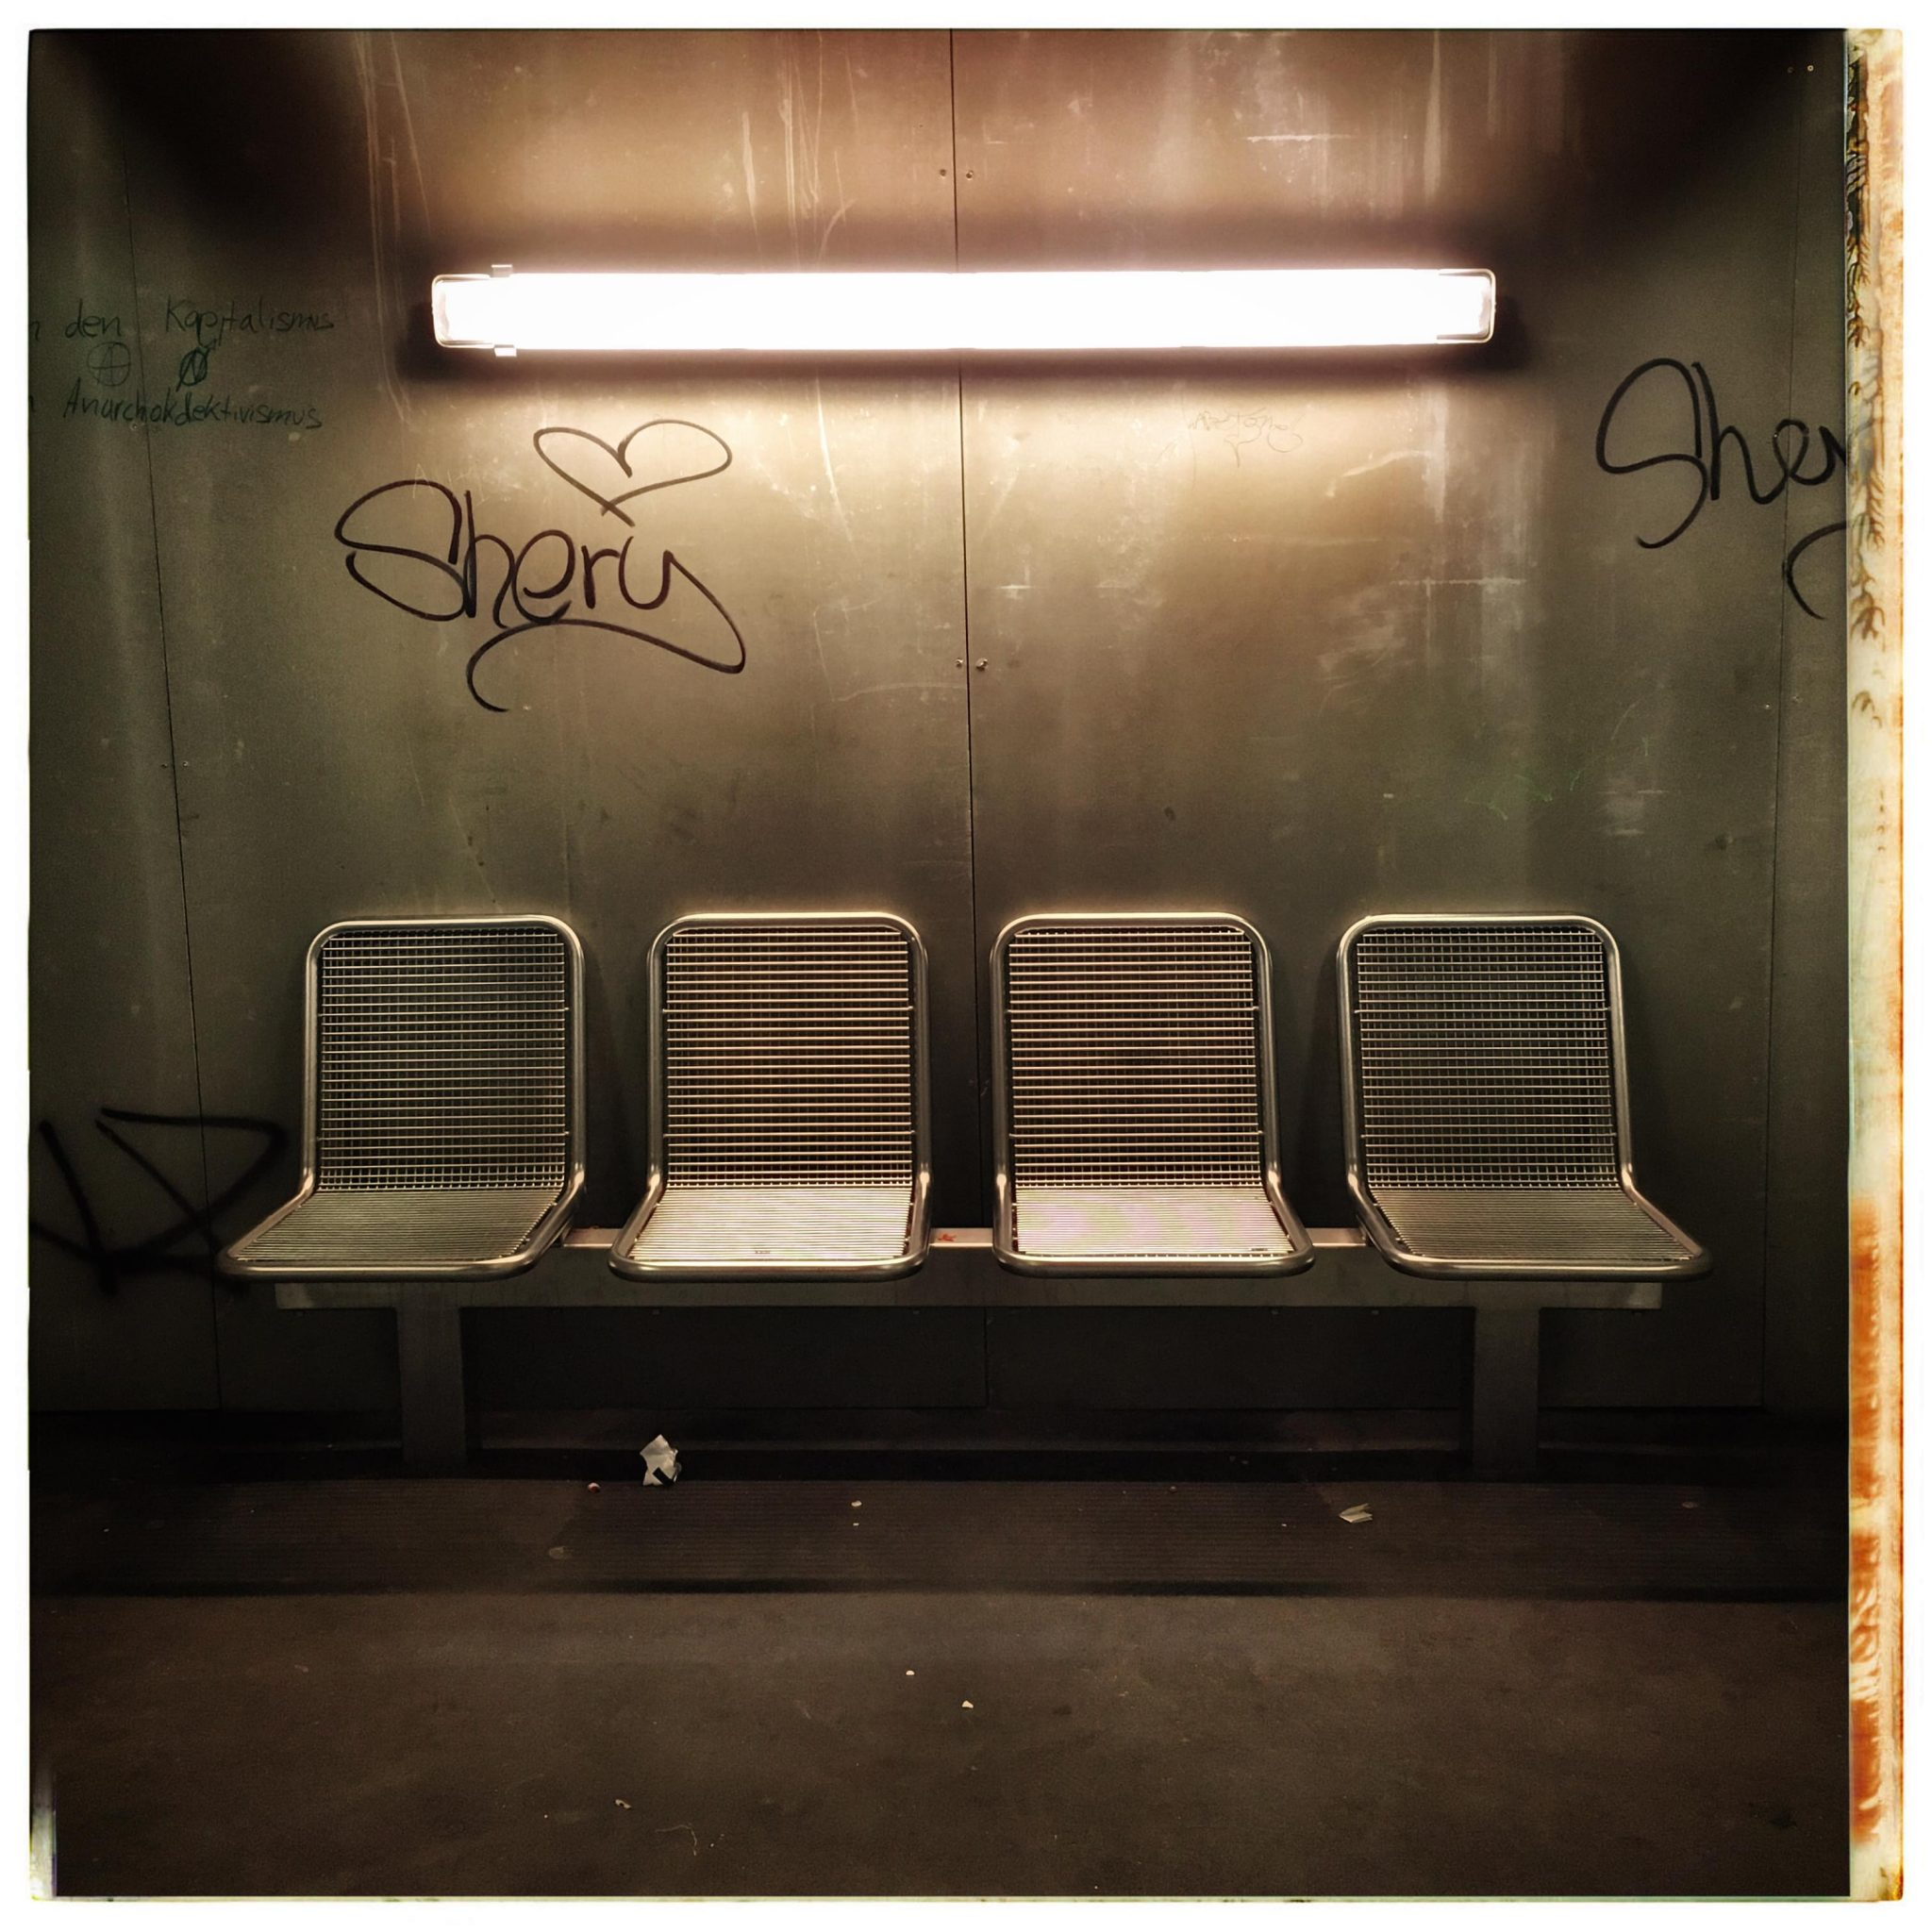 4 waiting chairs at an underground station